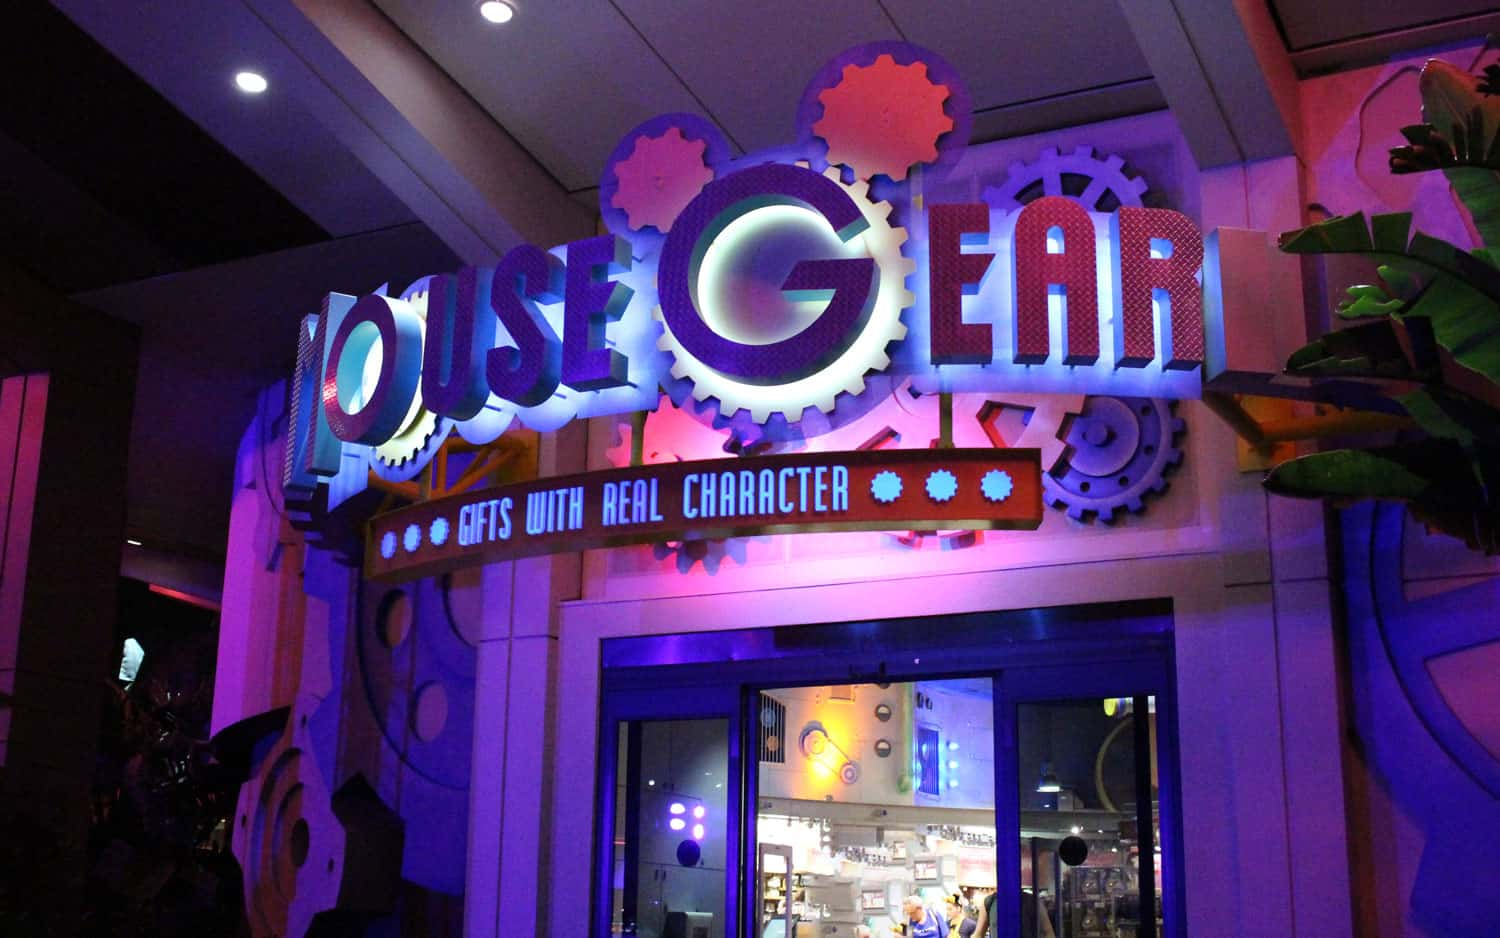 The 10 Best Gift Shops at Disney World You Don't Want to Miss 3